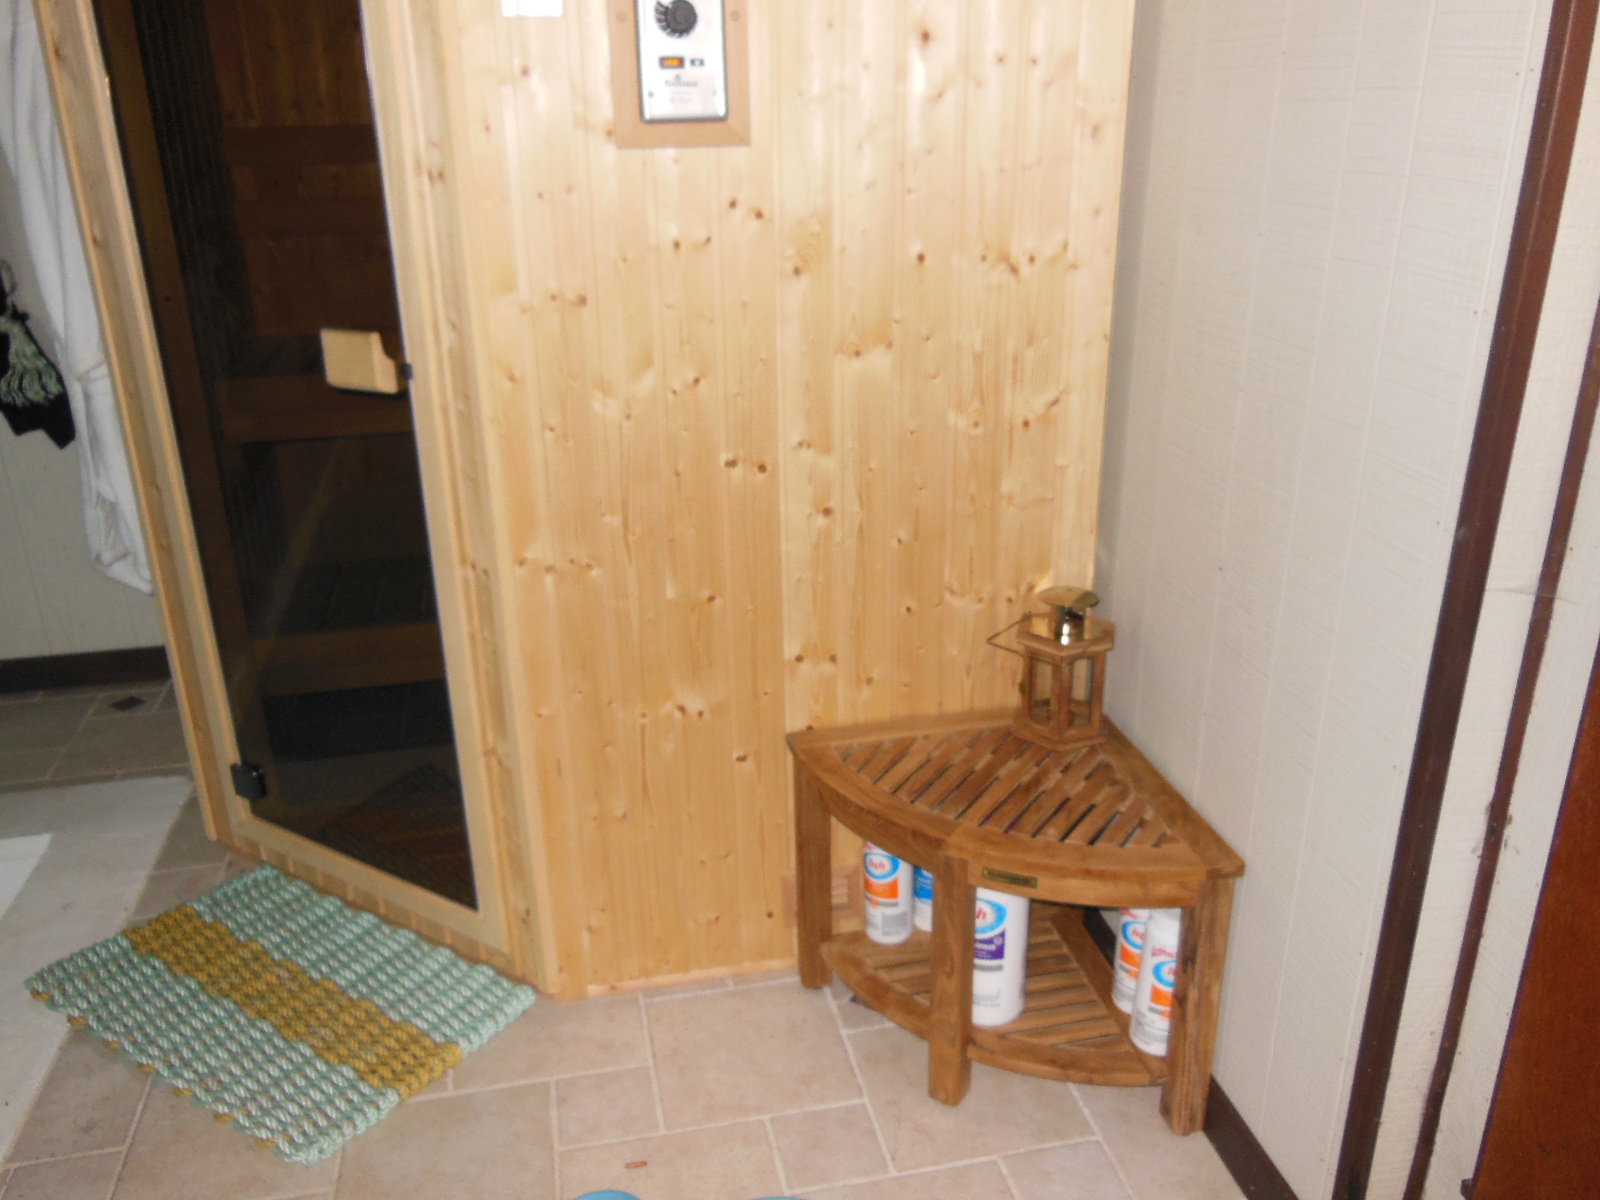 Goldenteak's Teak Corner Table or Shower Stool (TSCT9) in use